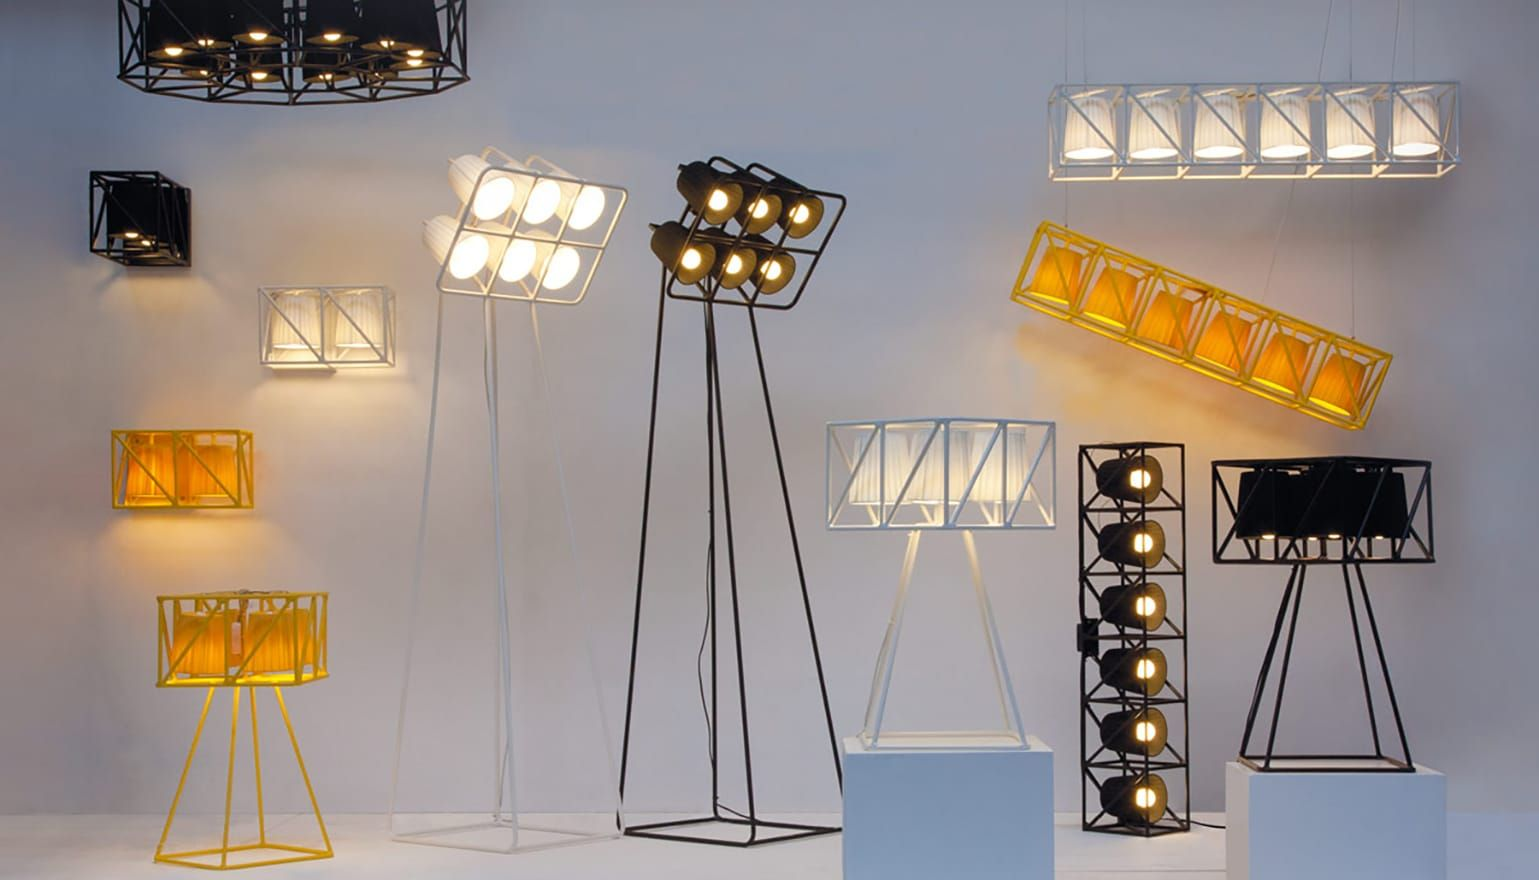 10 LUXURY LIGHTING BRANDS WHICH WILL BE ATTENDING SALONE DEL MOBILE!